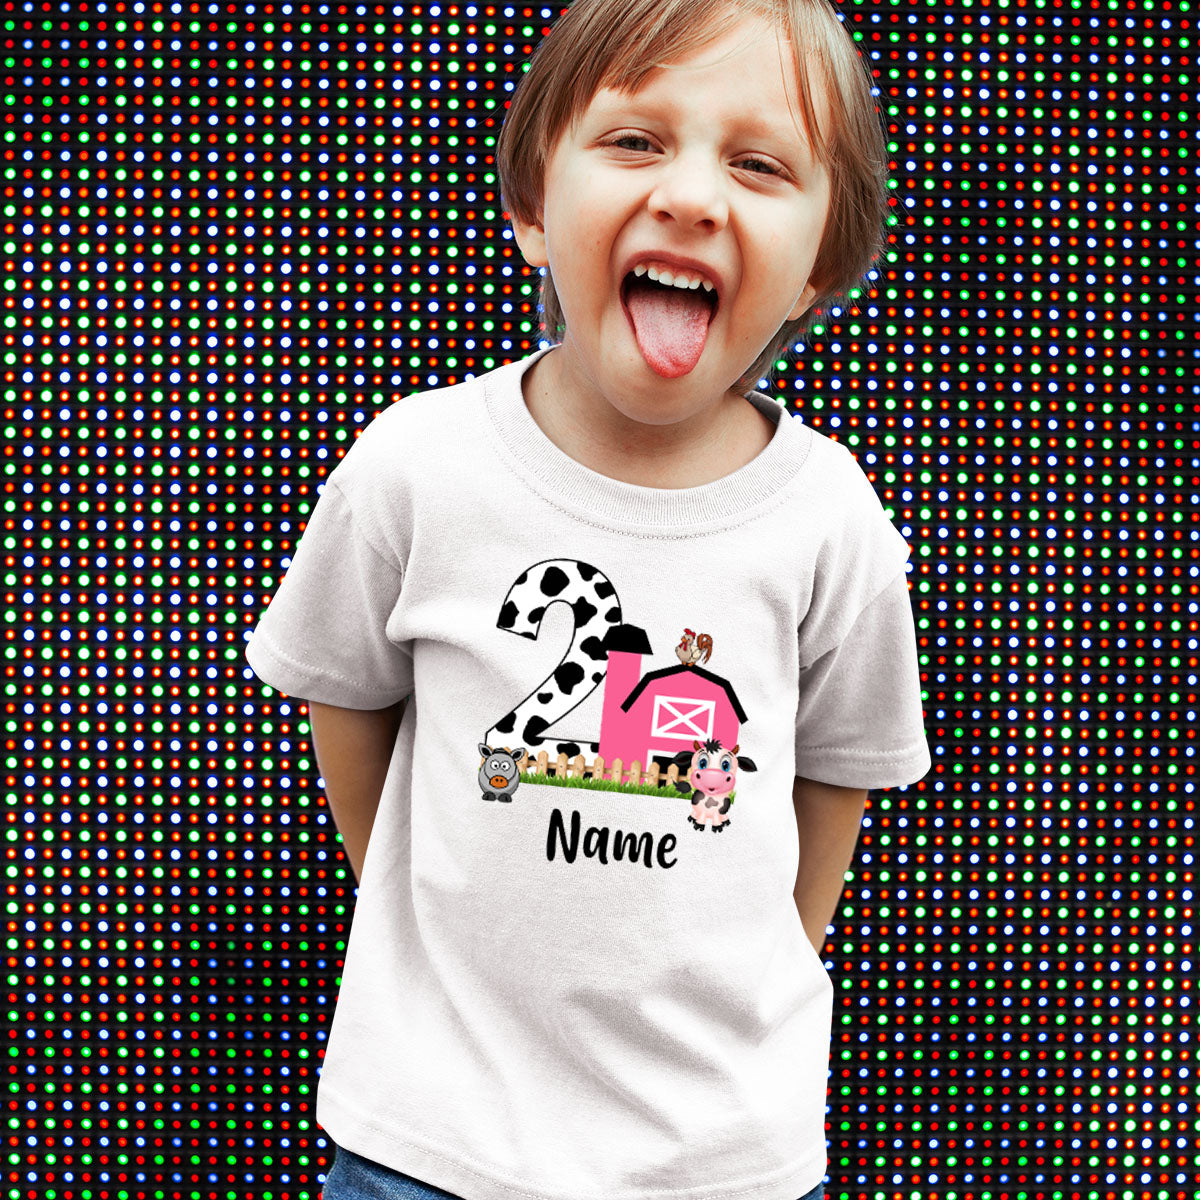 Sprinklecart Special 2nd Birthday Dress for Your Little One | Personalized Name Printed Little Farm House Kids Birthday T Shirt